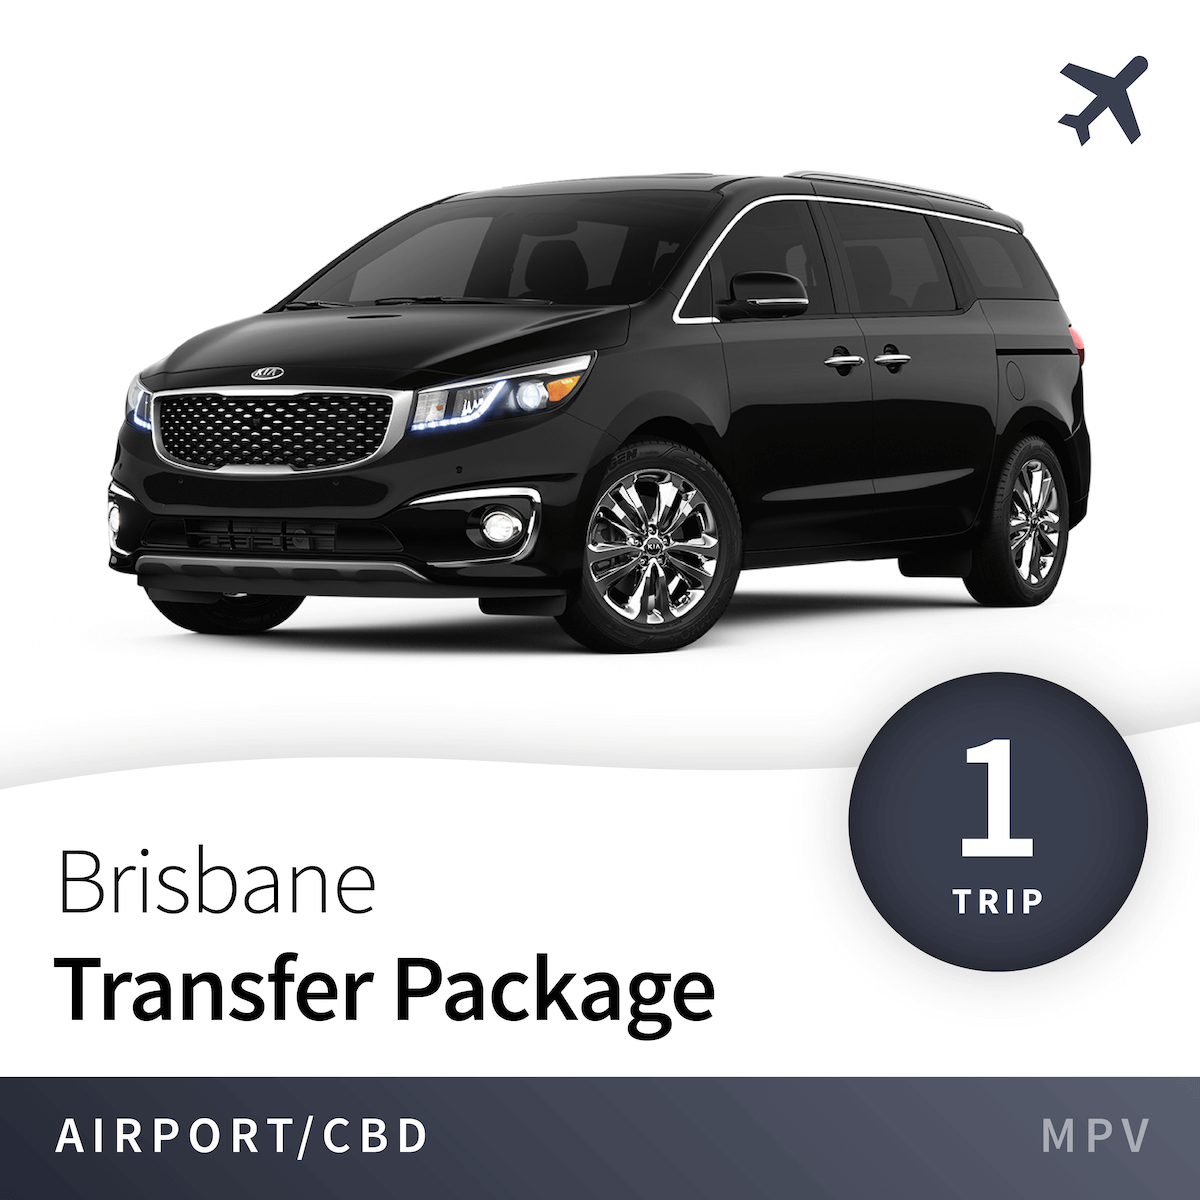 Brisbane Airport Transfer Package - MPV (1 Trip) 3